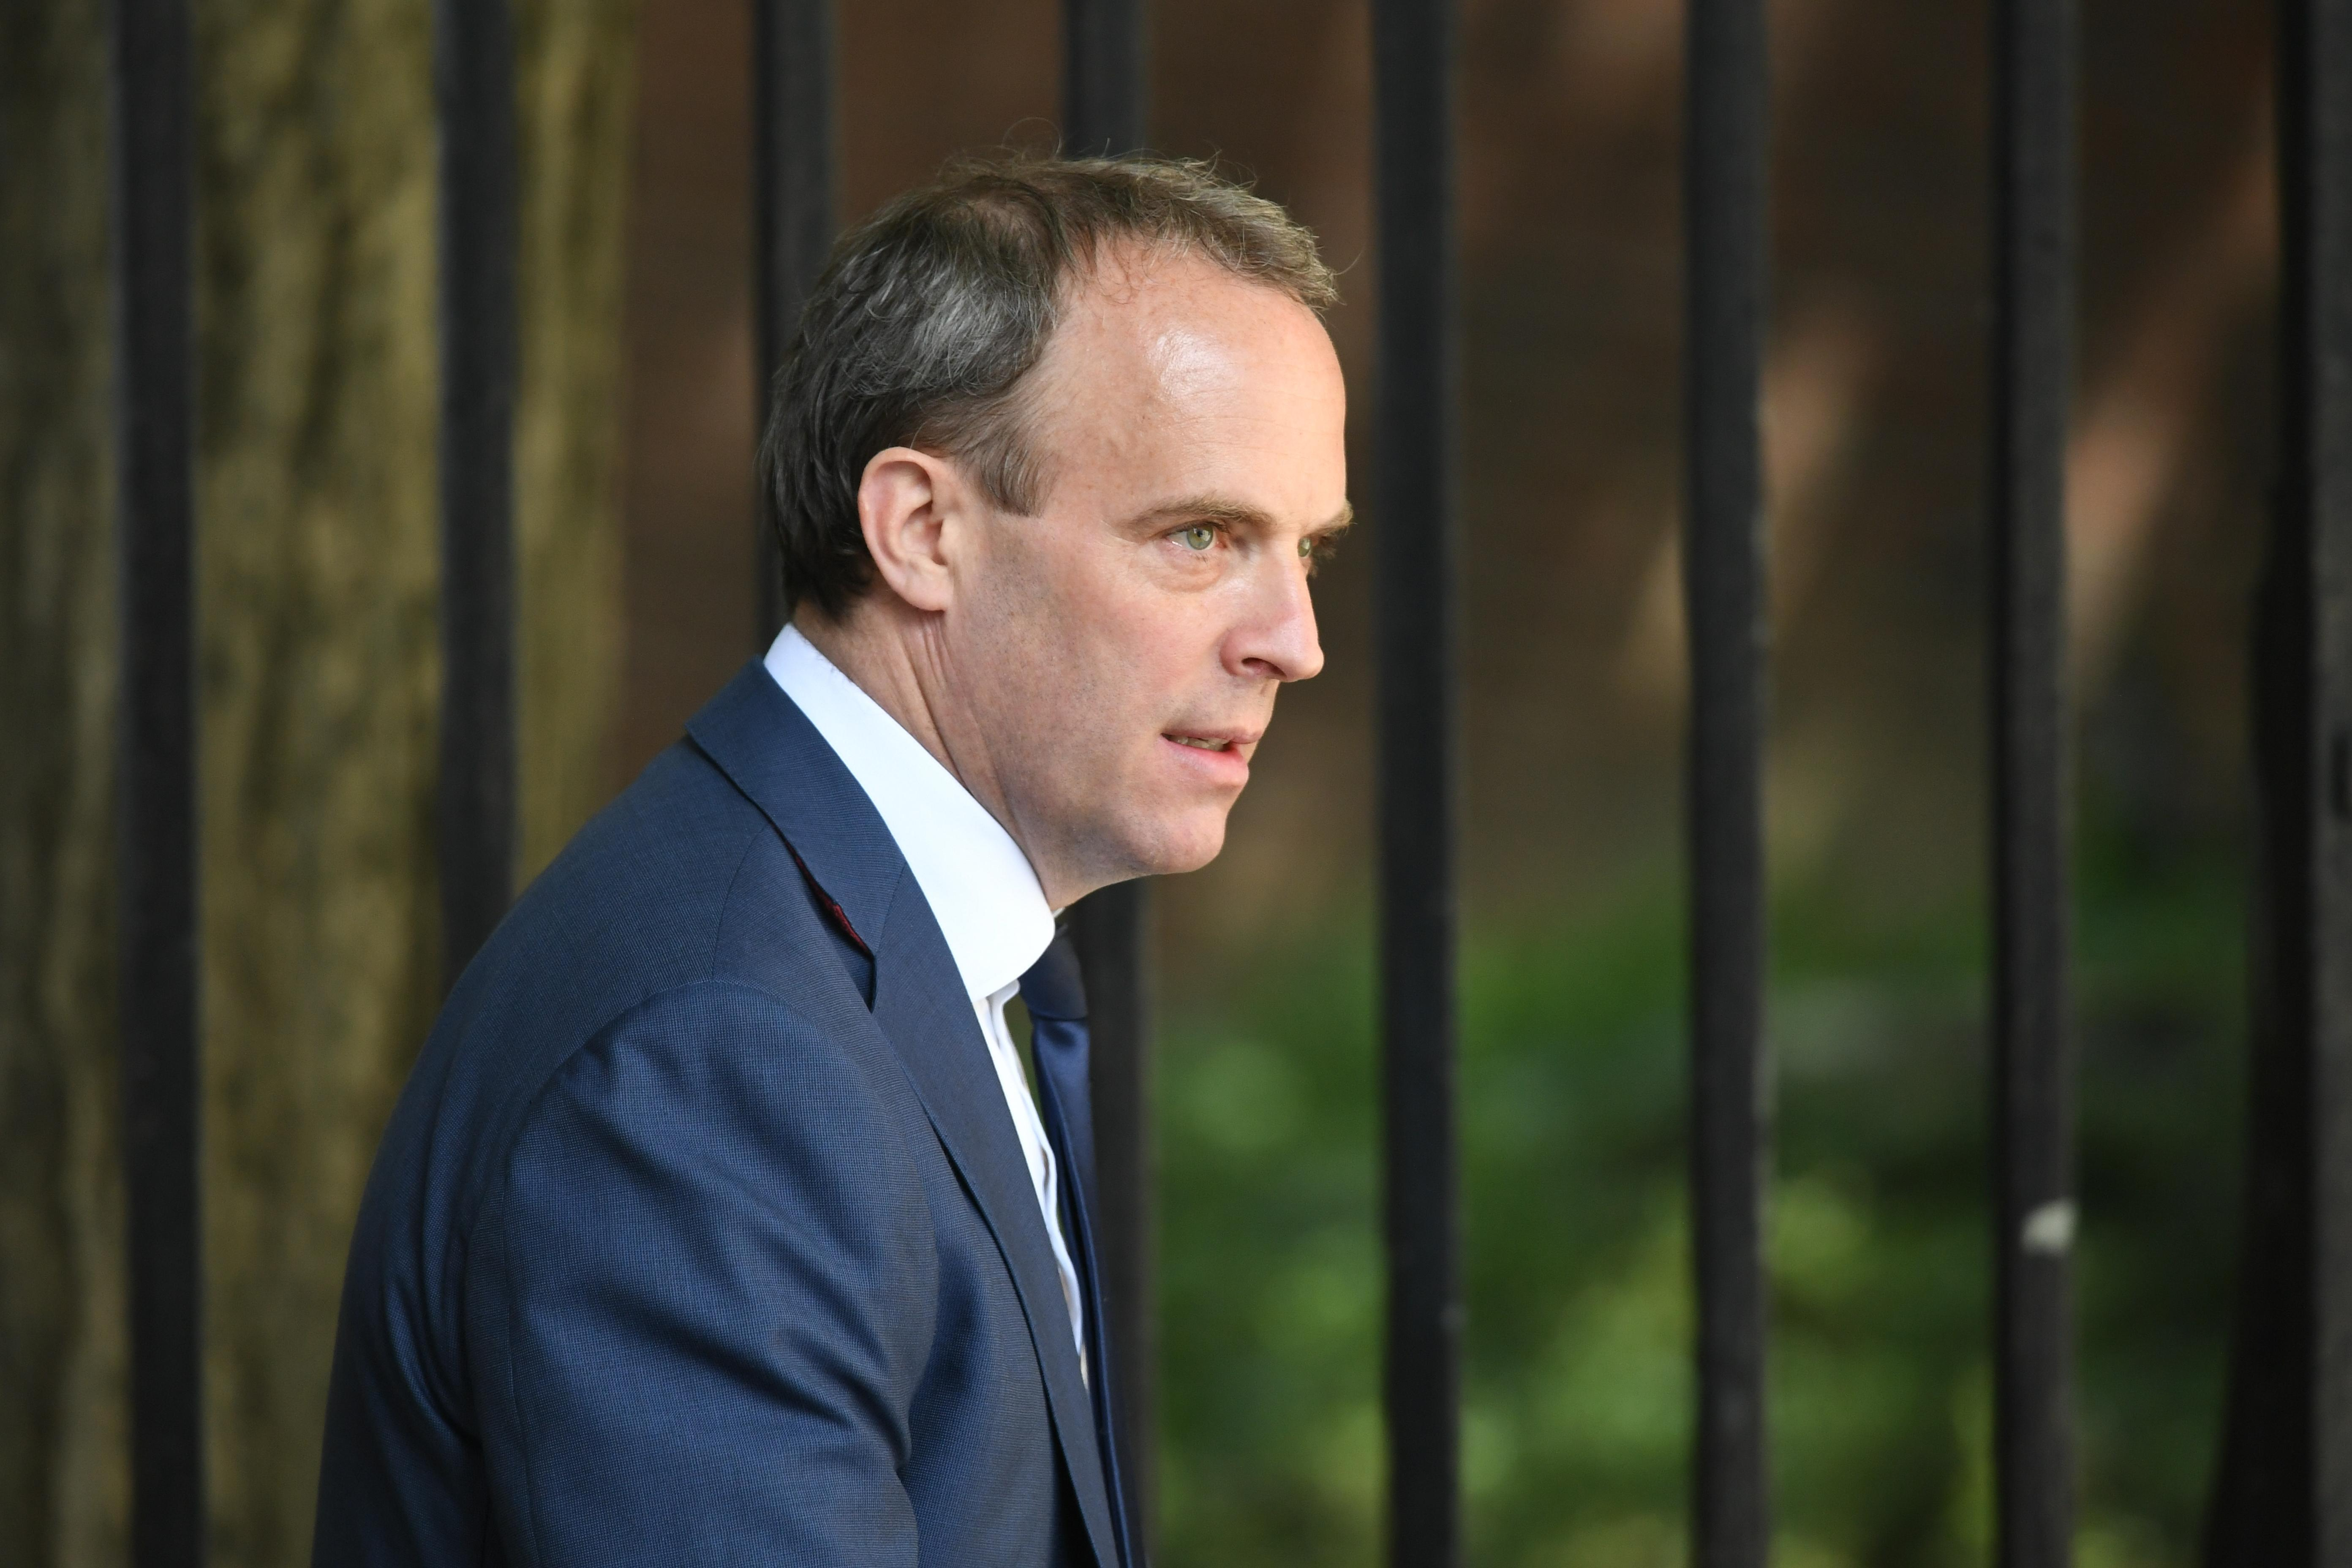 Dominic Raab faces growing criticism after saying take the knee has come 'from Game of Thrones'